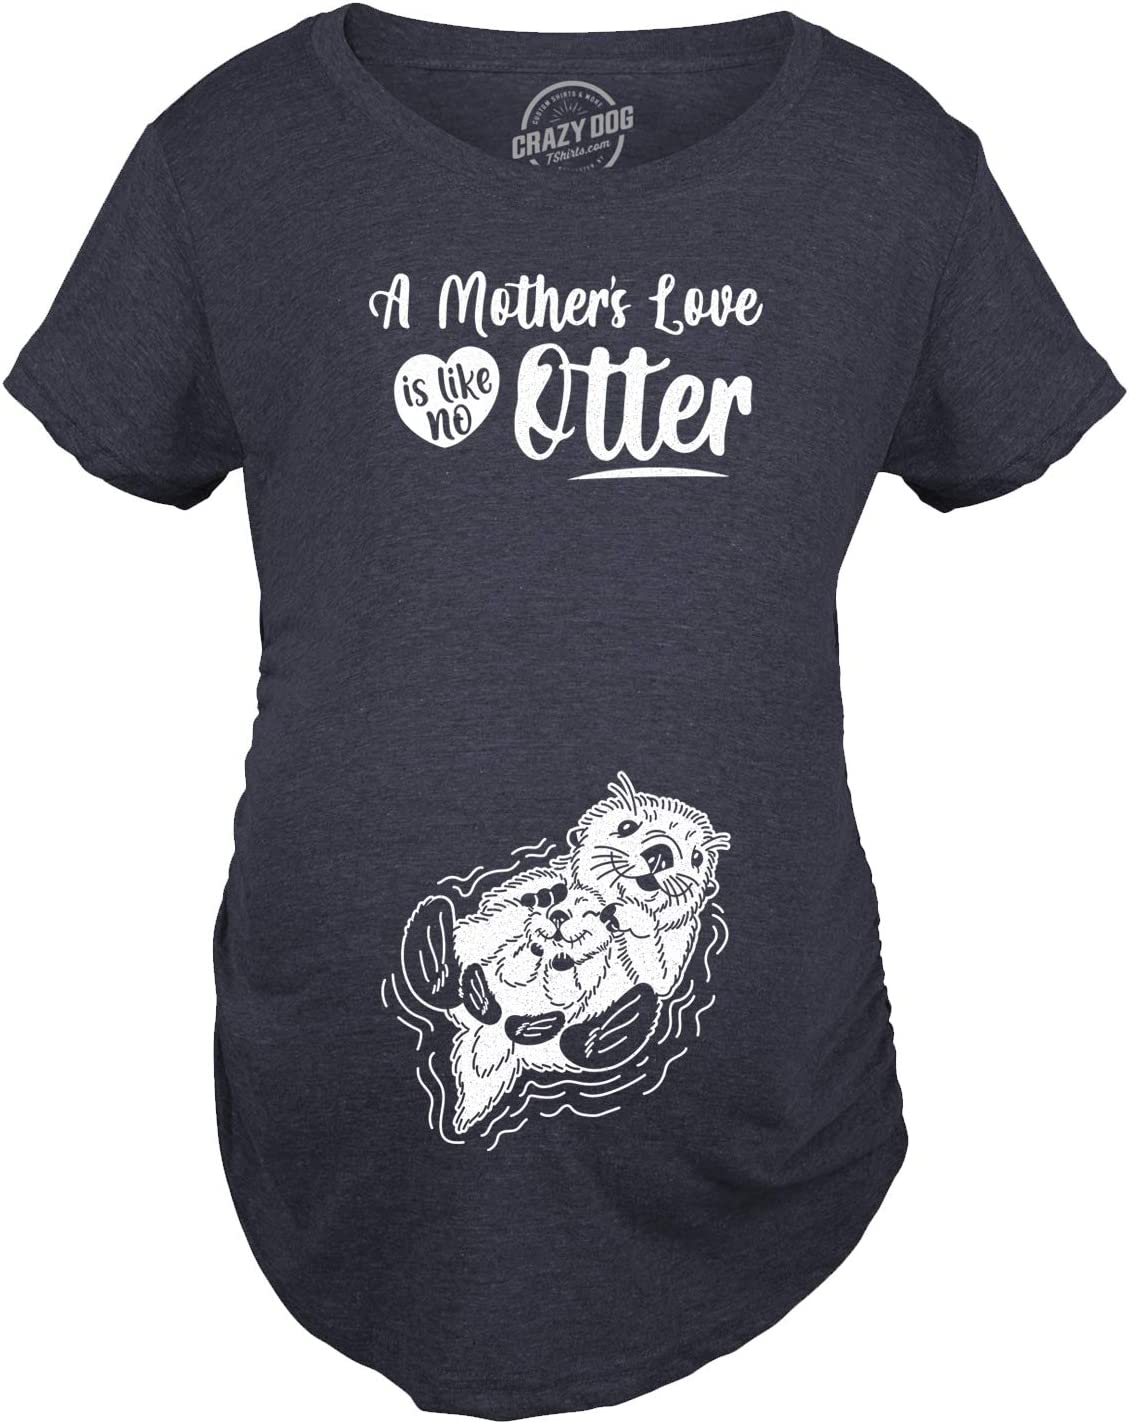 Maternity A Mothers Love Is Like No Otter Tshirt Cute Pregnancy Mothers Day Tee